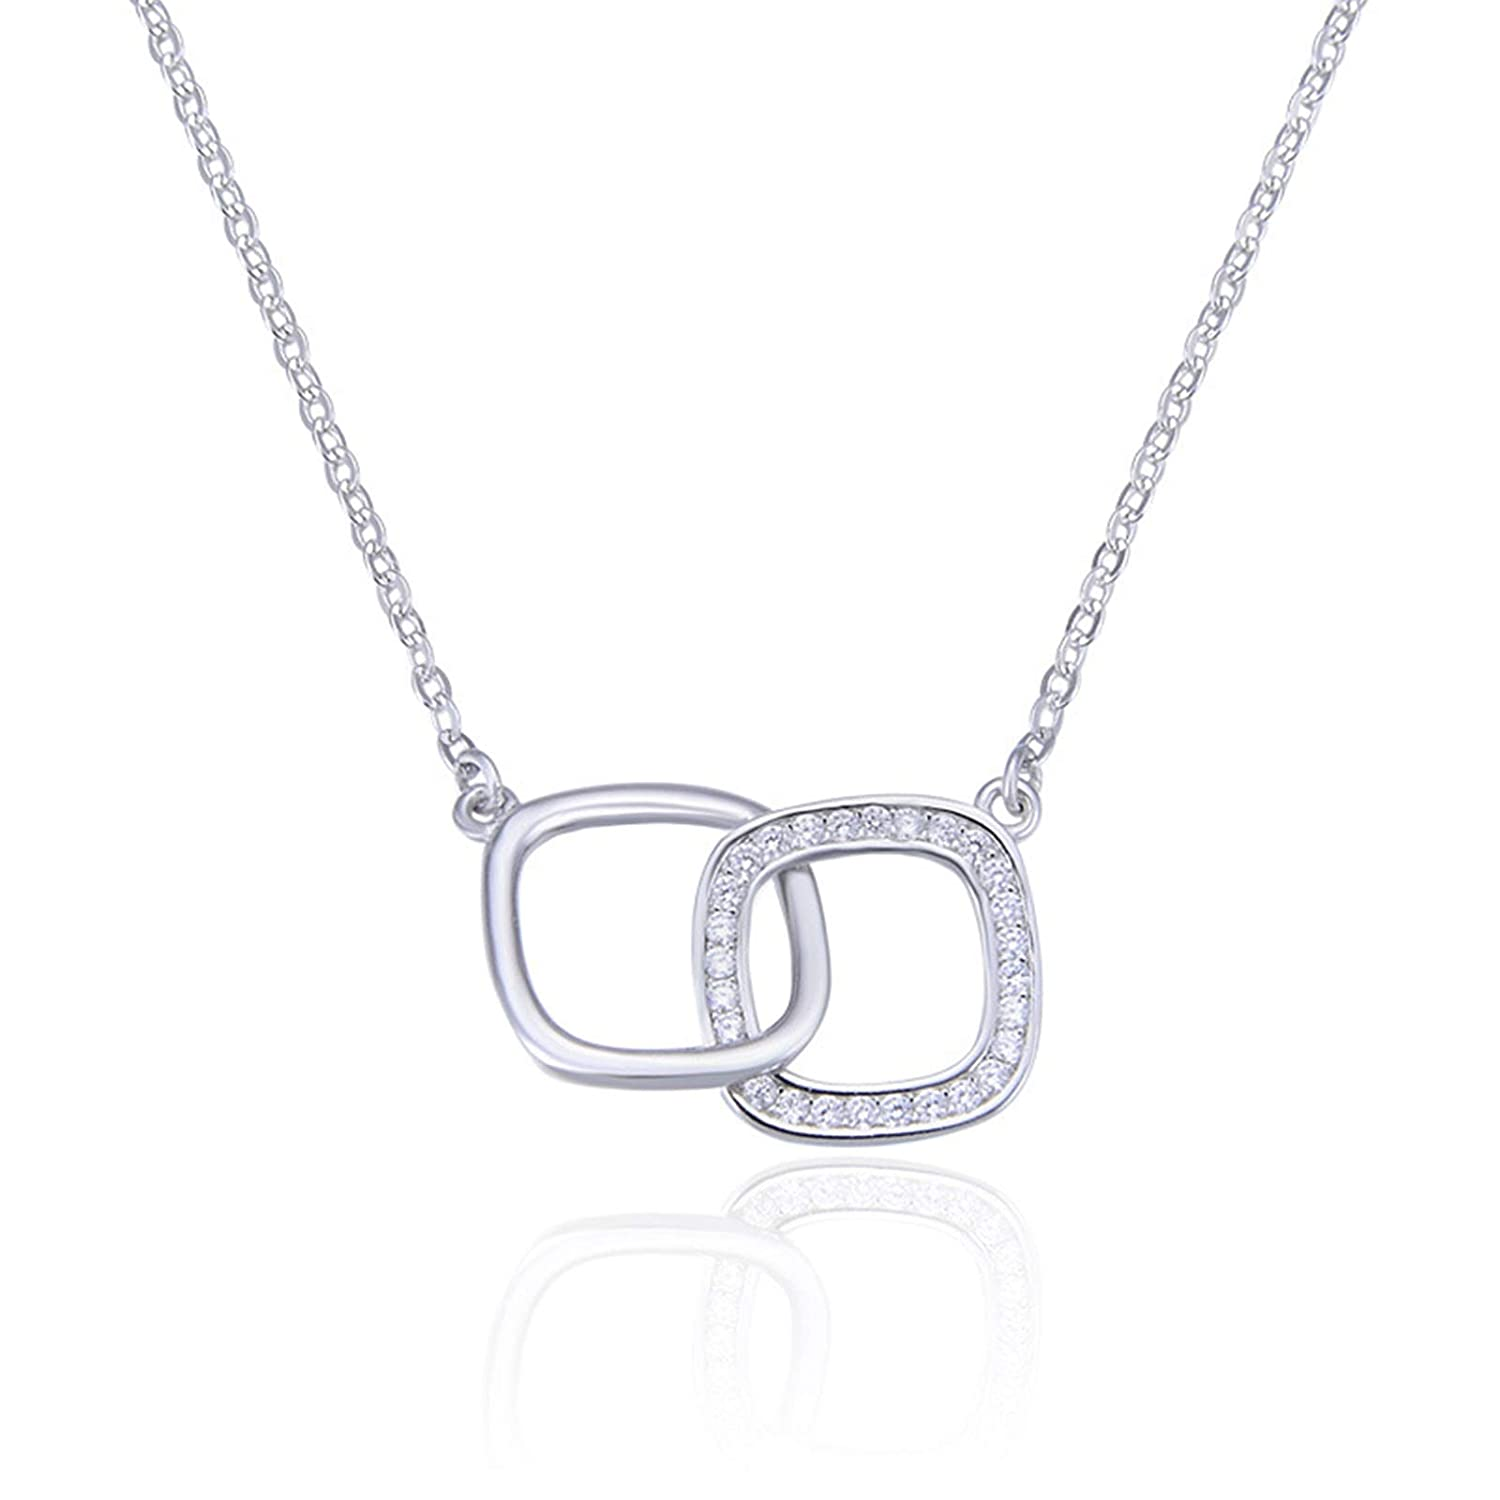 Daesar 925 Sterling Silver Necklace with Pendant Necklace for Women Fashion Hollow Rectangle Necklace Cubic Zirconia Silver